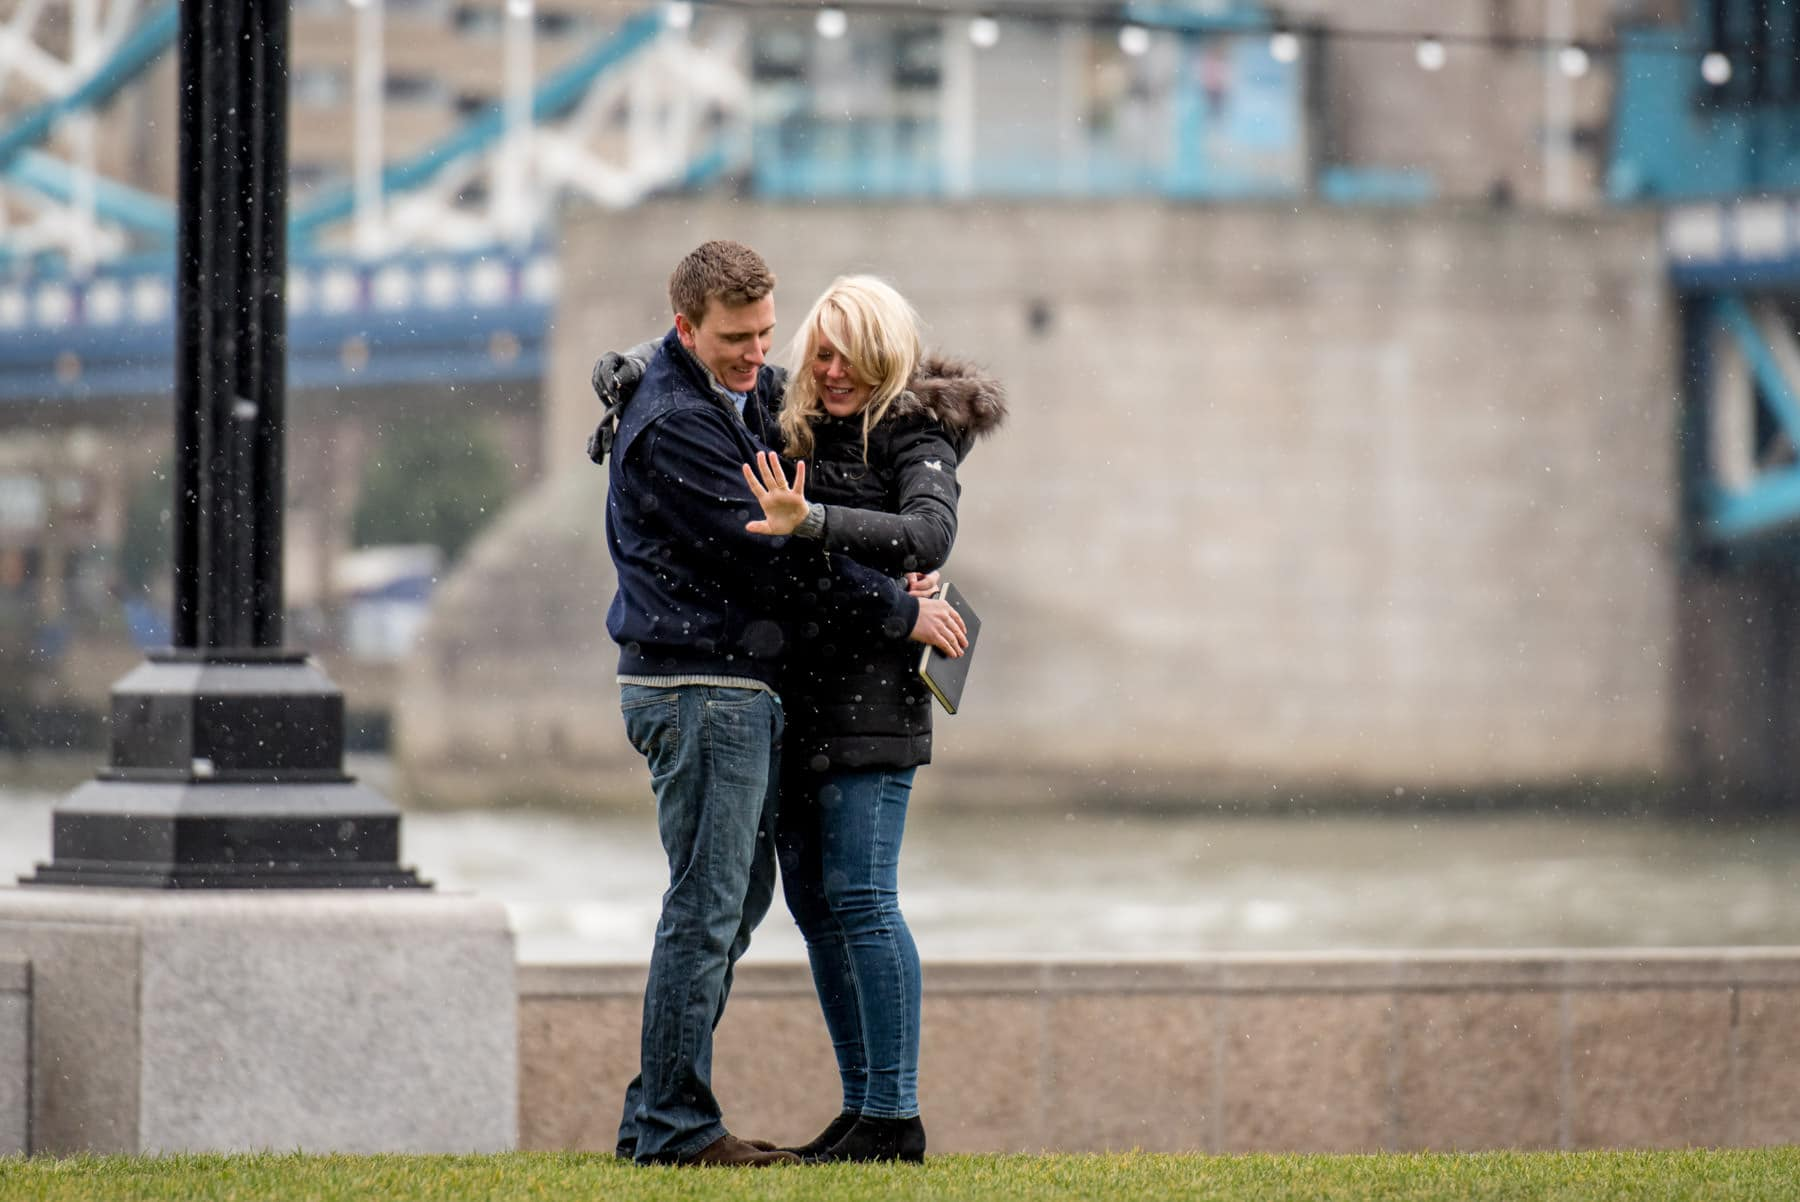 A American tourist who just proposed to his girlfriend in front of Tower Bridge in London in the rain